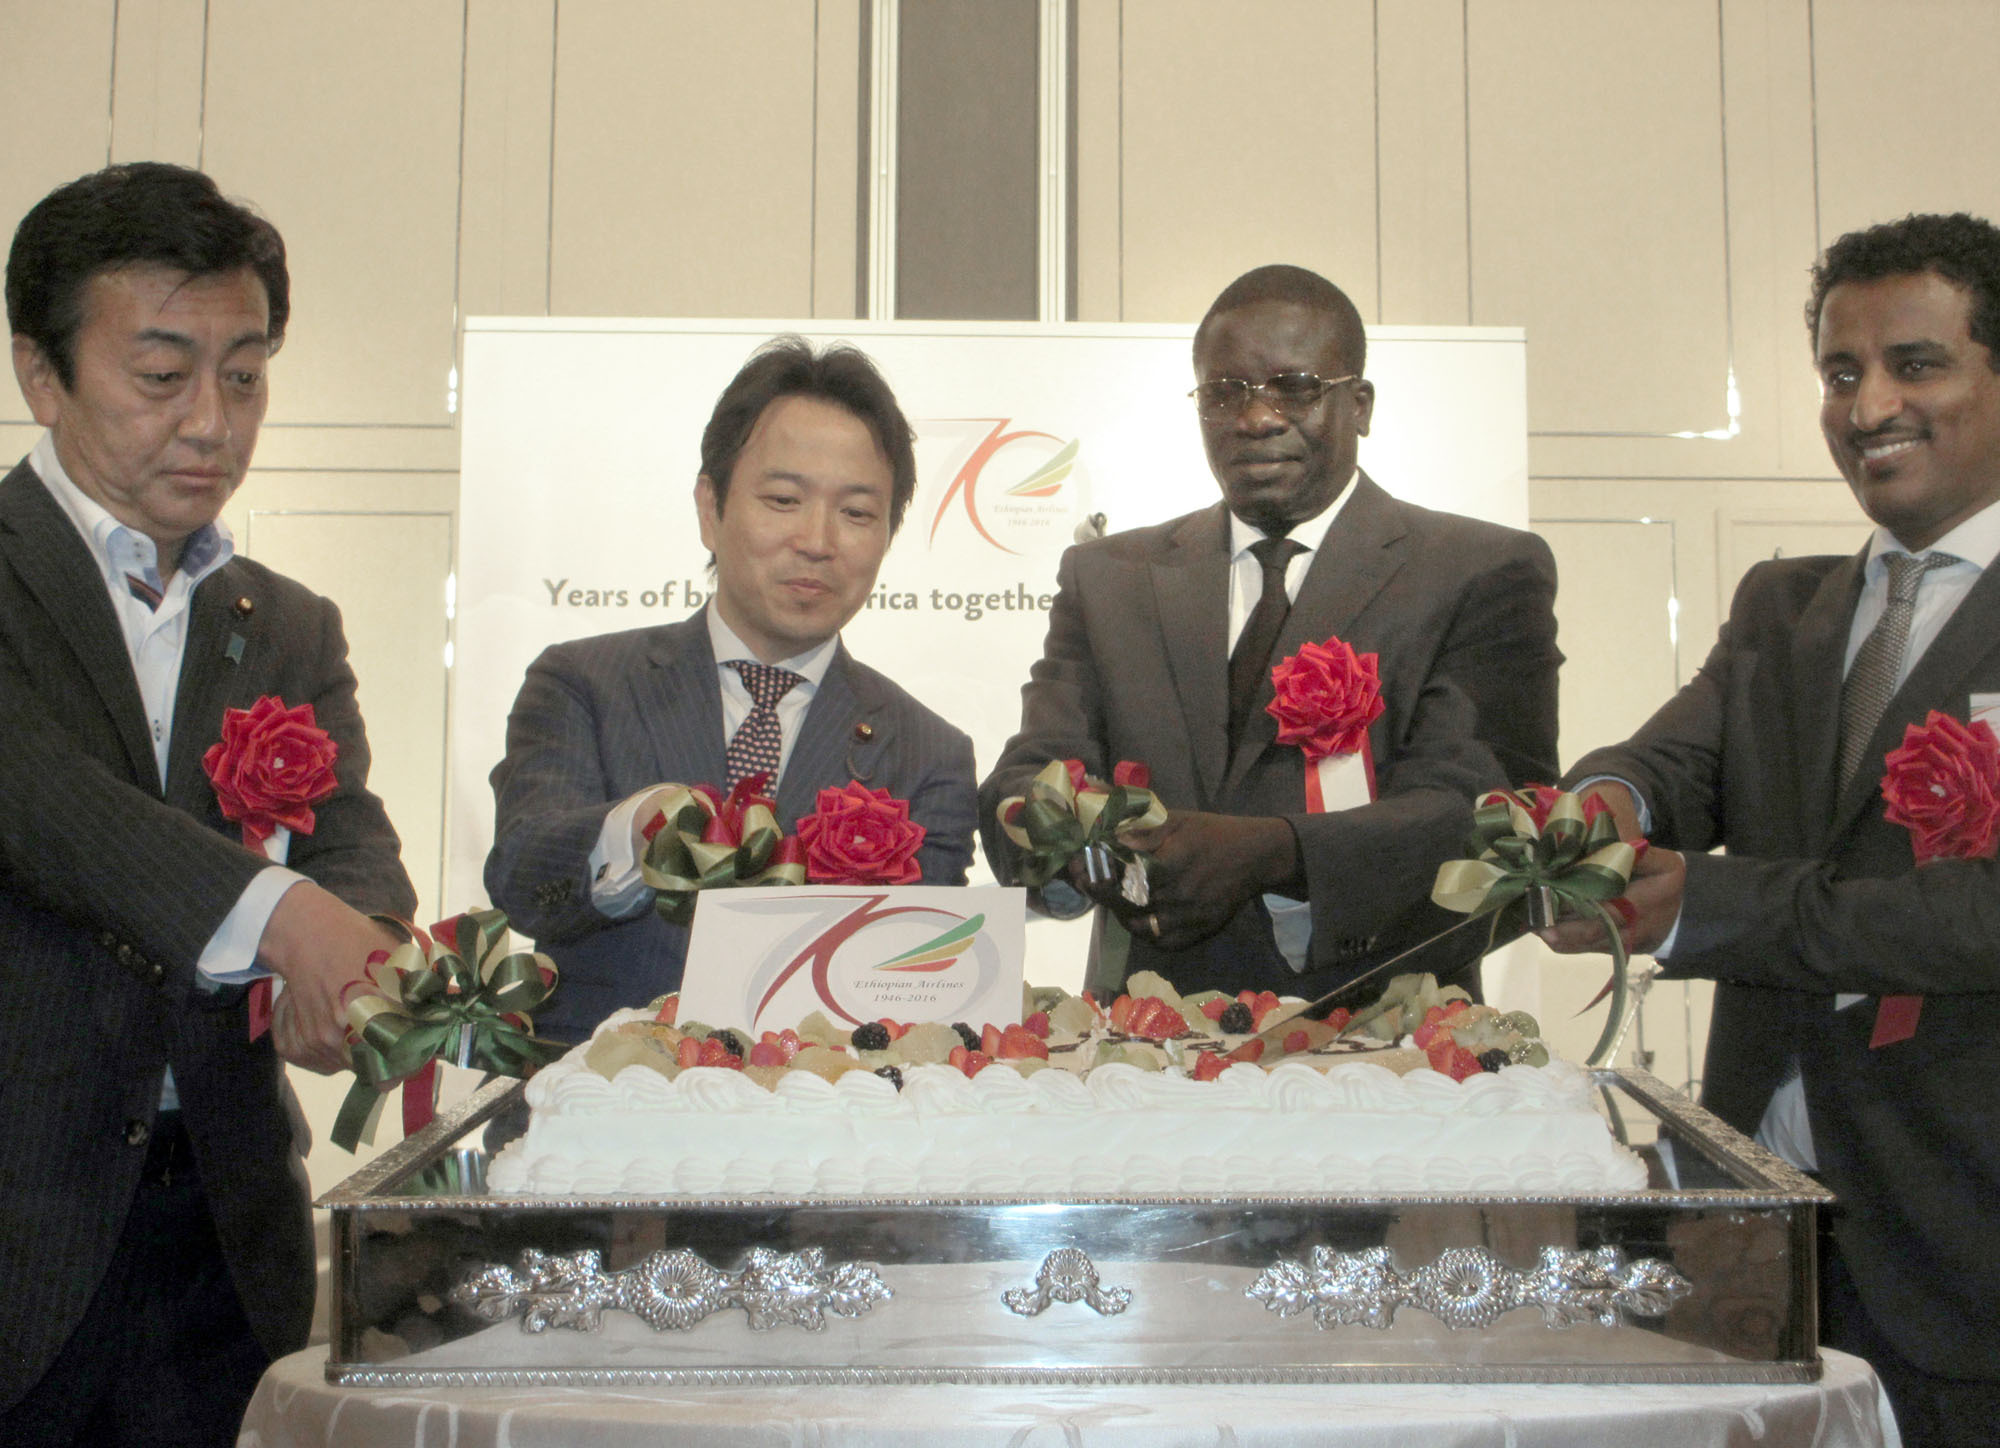 Ethiopian Ambassador Cham Ugala Uriat (second from right) joins, from left, Parliamentary Vice-Minister of Economy, Trade and Industry Tsuyoshi Hoshino; Parliamentary Vice-Minister for Foreign Affairs Masakazu Hamachi; and Ashenafi Yirga, Japan area manager for Ethiopian Airlines, during a cake-cutting ceremony to celebrate the 25th Anniversary of Ethiopian National Day and the 70th Anniversary of Ethiopian Airlines at the Marriott Hotel on May 30.   HIROKO INOUE